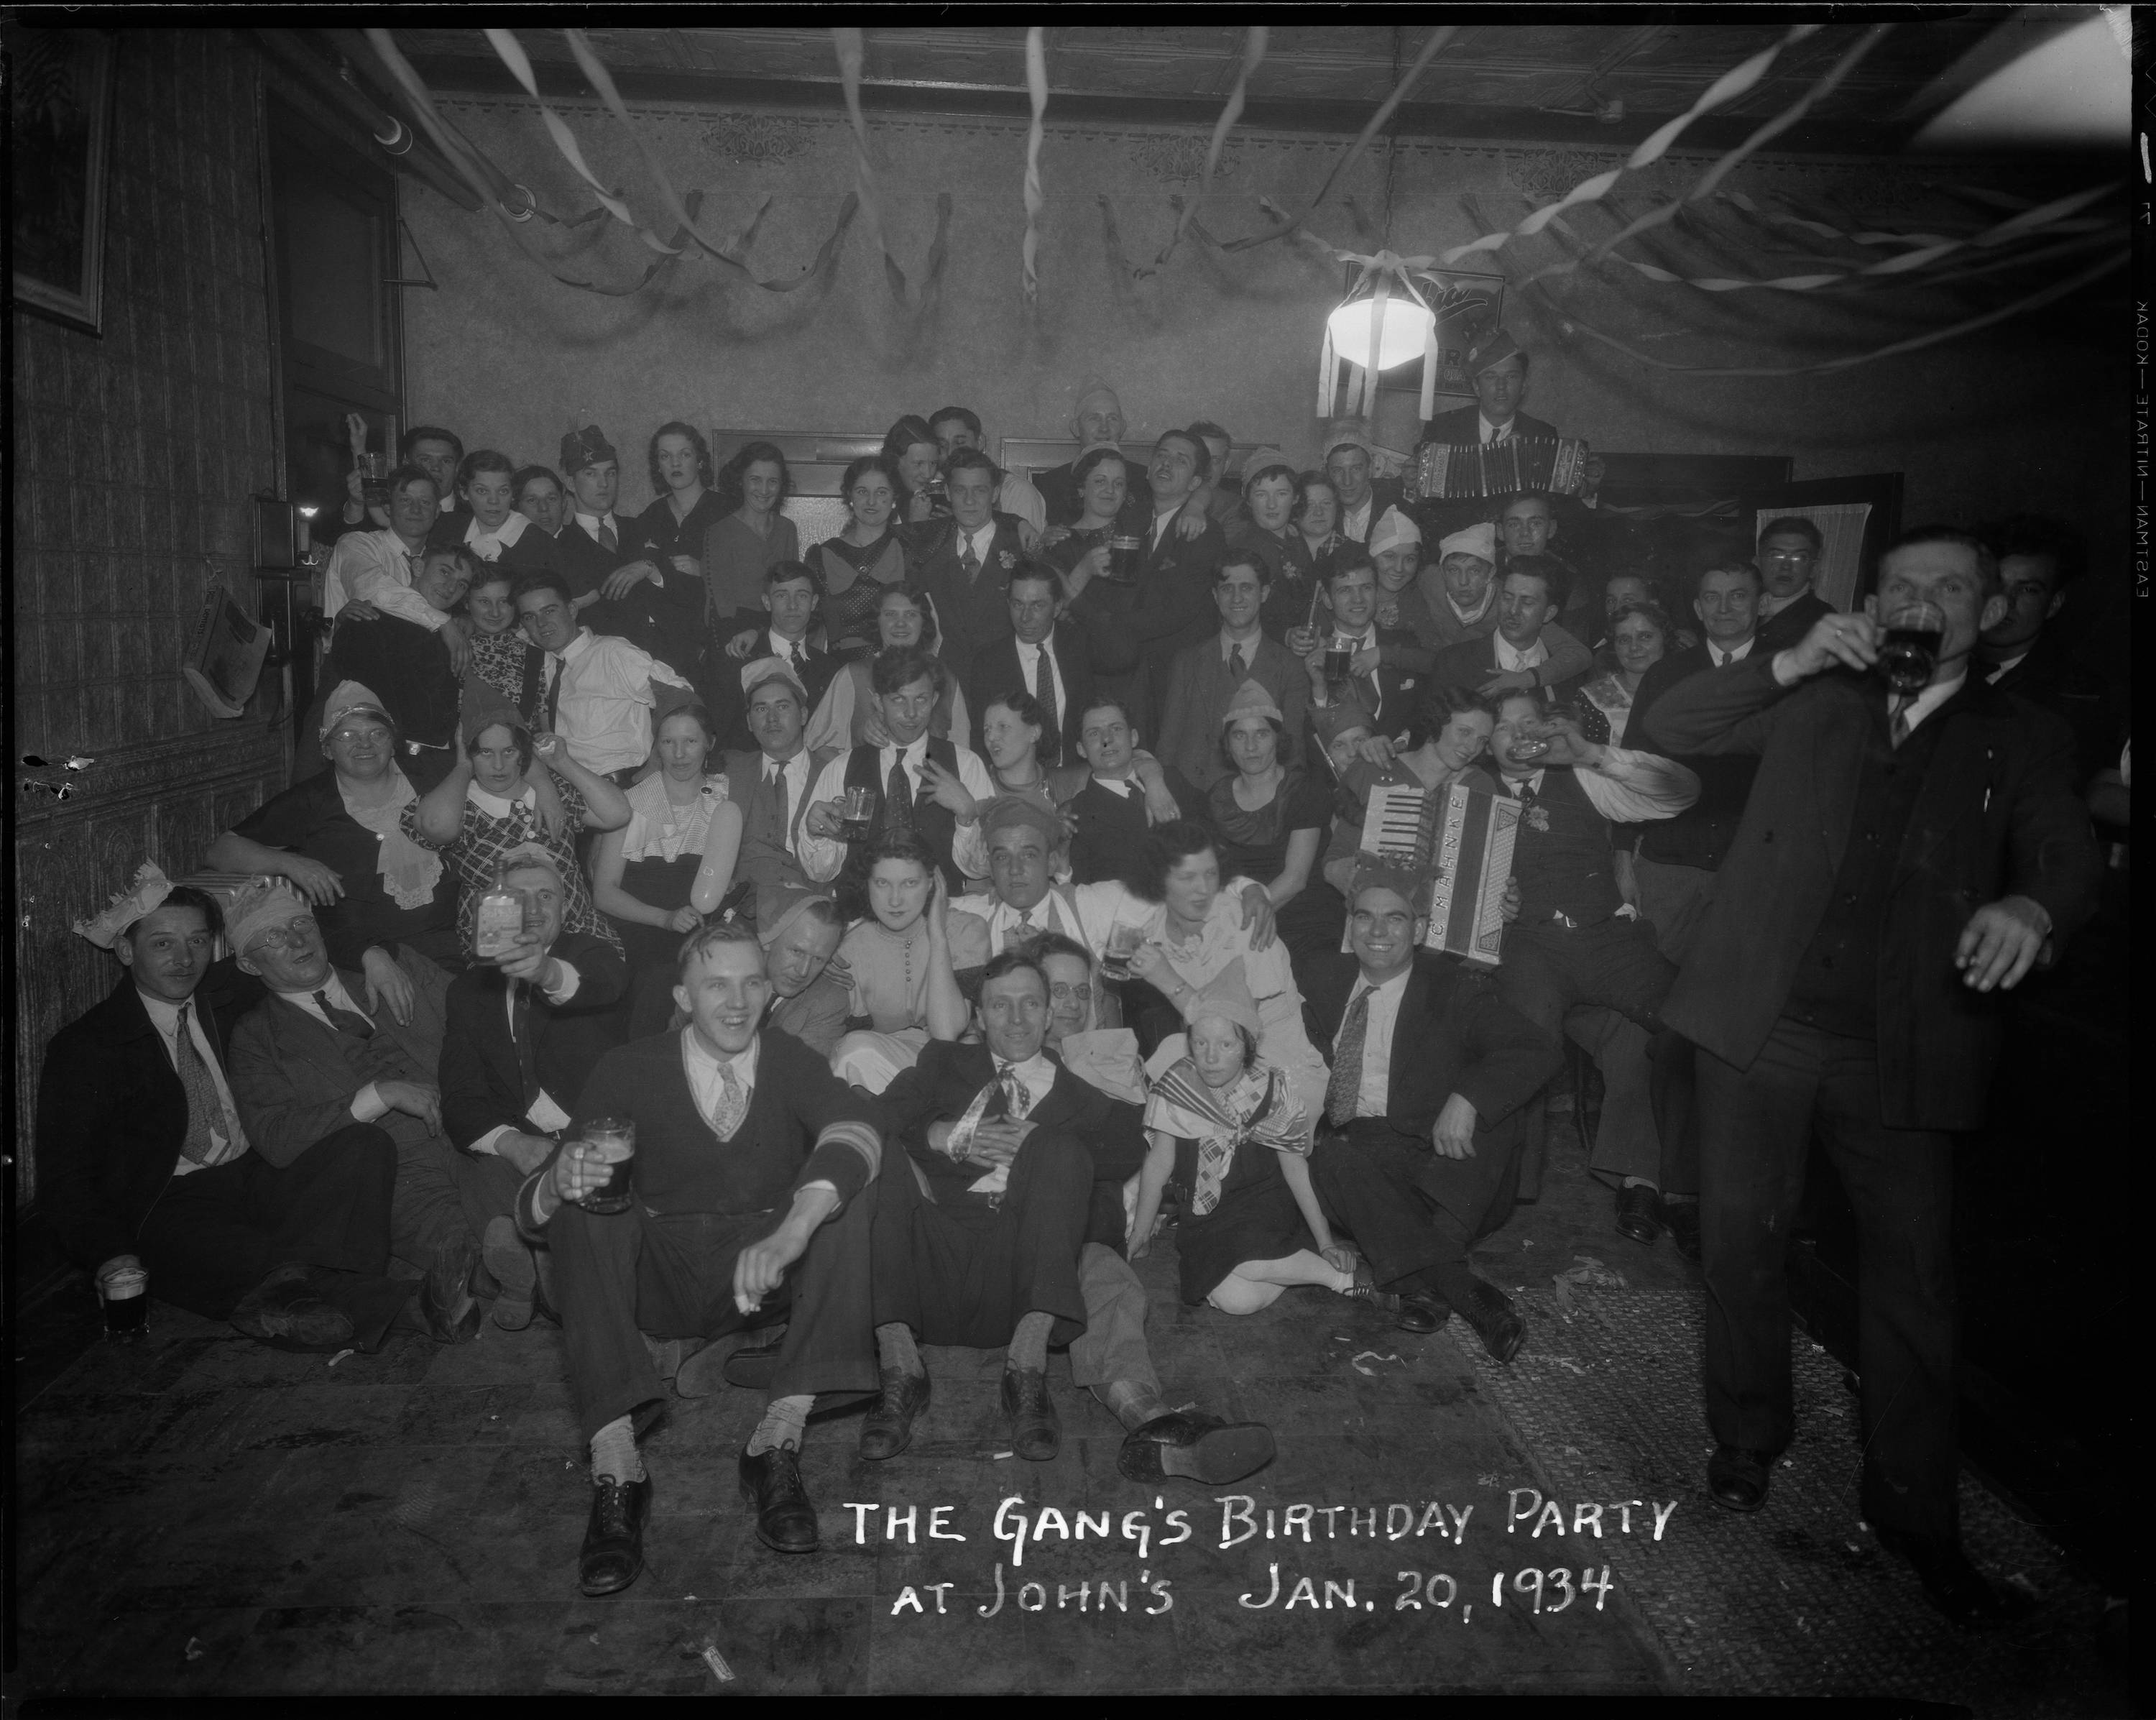 <table class=&quot;lightbox&quot;><tr><td colspan=2 class=&quot;lightbox-title&quot;>Birthday Party</td></tr><tr><td colspan=2 class=&quot;lightbox-caption&quot;>The spirit of Gemütlichkeit is captured through this gathering of friends for a birthday party in 1934. </td></tr><tr><td colspan=2 class=&quot;lightbox-spacer&quot;></td></tr><tr class=&quot;lightbox-detail&quot;><td class=&quot;cell-title&quot;>Source: </td><td class=&quot;cell-value&quot;>From the Roman B. Kwaniewski Photographs Collection, Archives. University of Wisconsin-Milwaukee Libraries. </td></tr><tr class=&quot;filler-row&quot;><td colspan=2>&nbsp;</td></tr></table>